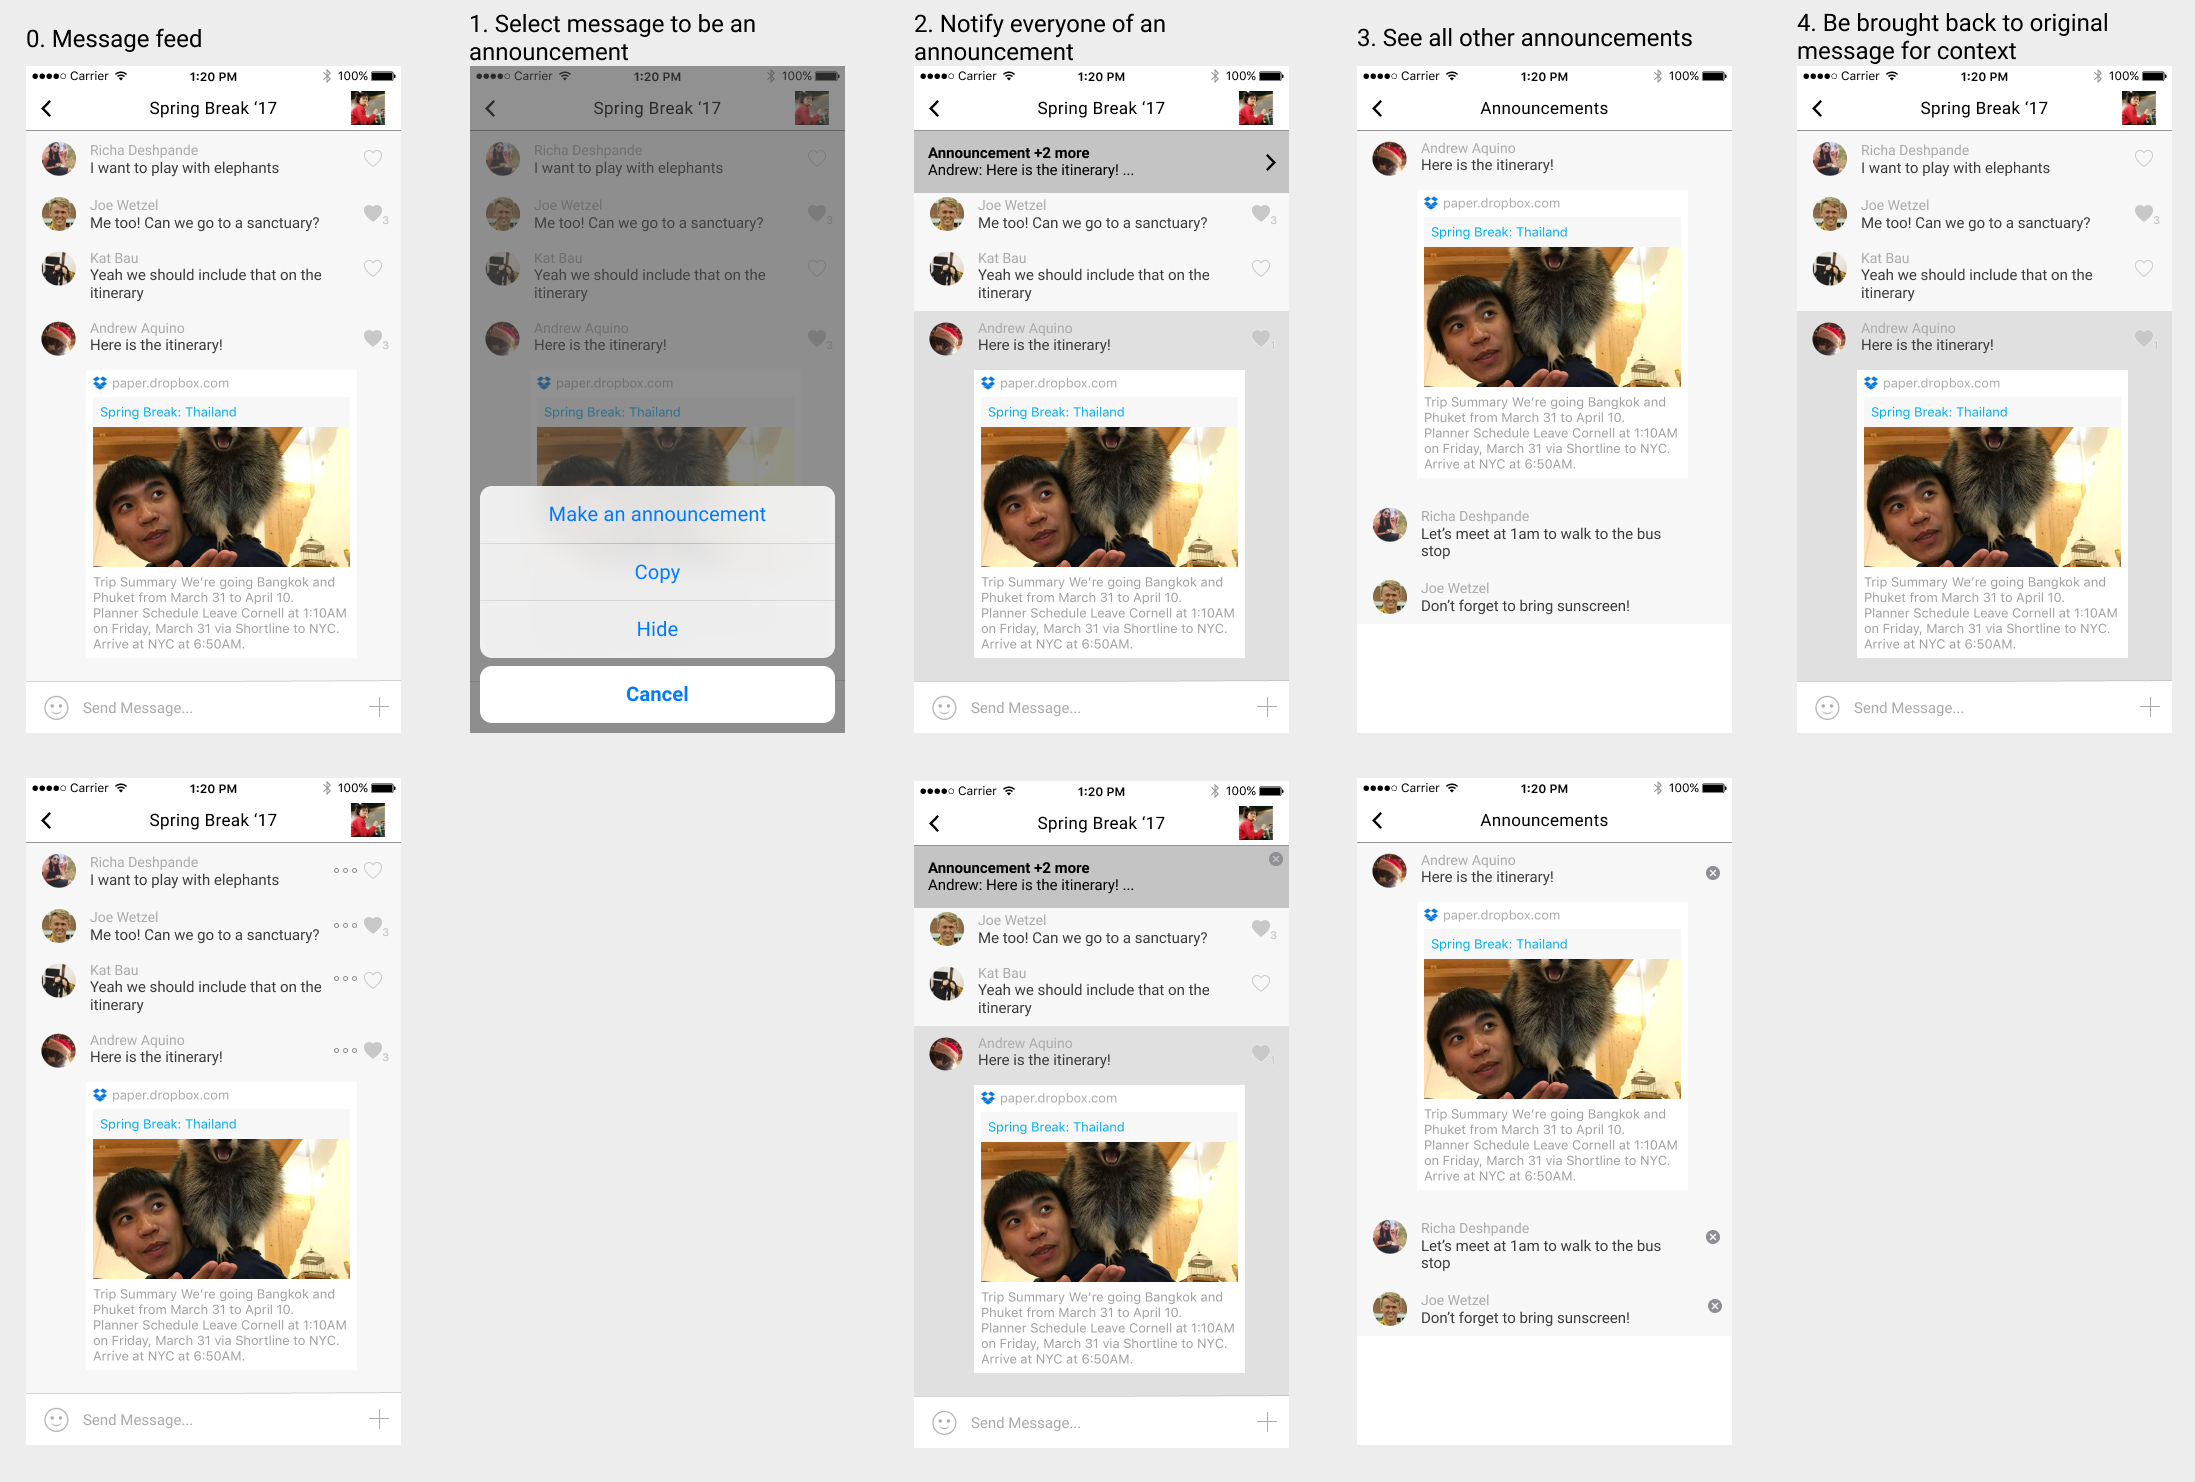 GroupMe Concept: Making Announcements and Saving Messages